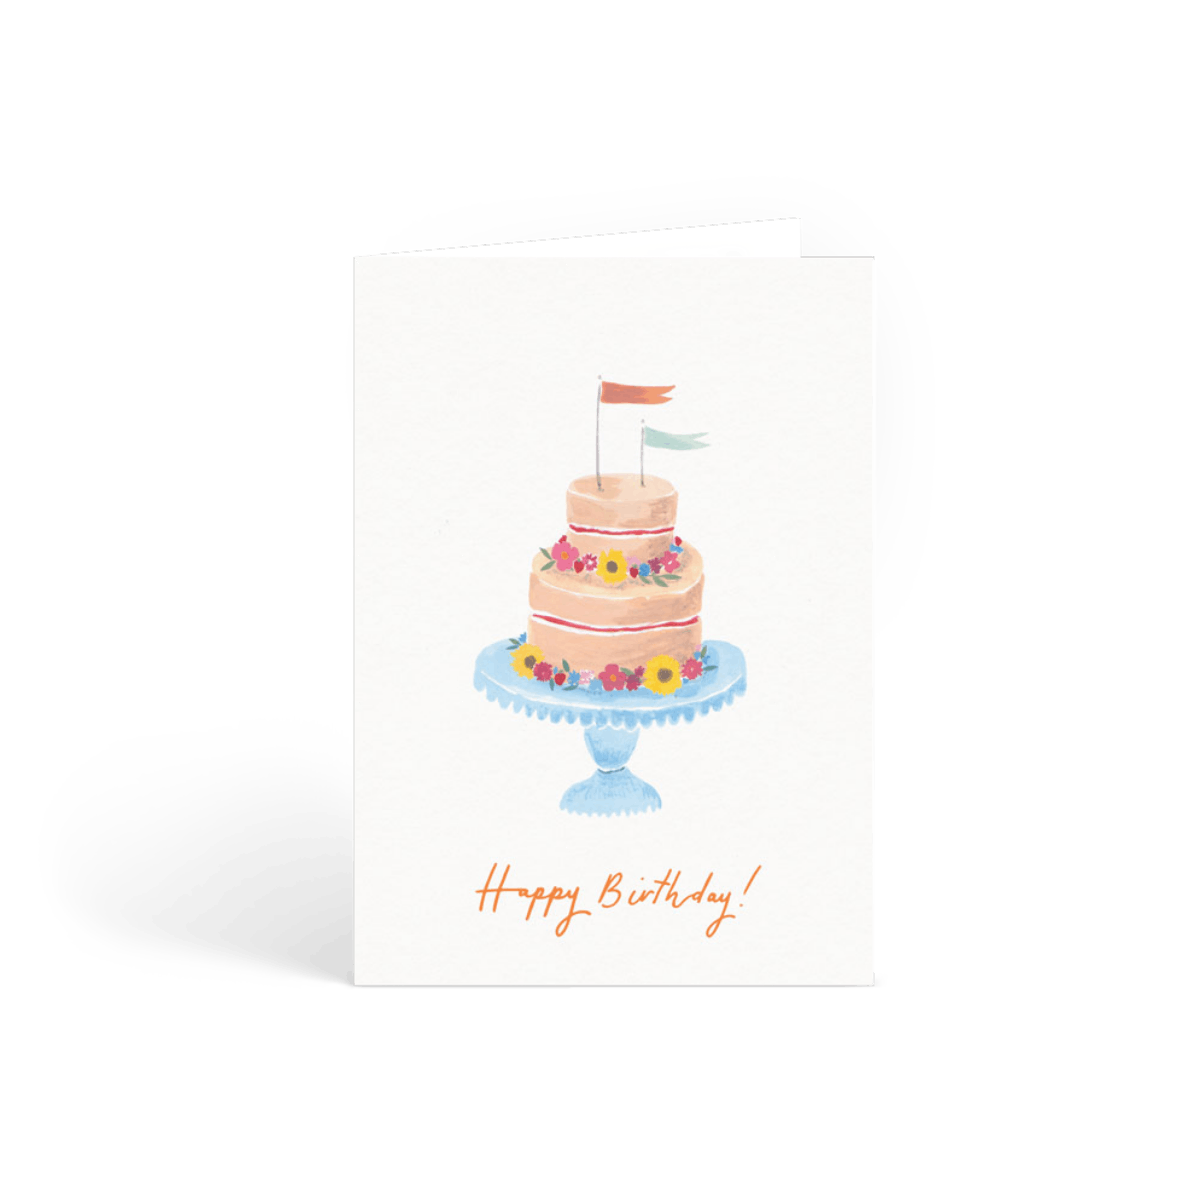 Https%3a%2f%2fwww.papier.com%2fproduct image%2f49710%2f2%2fbirthday cake 12183 front 1539786919.png?ixlib=rb 1.1